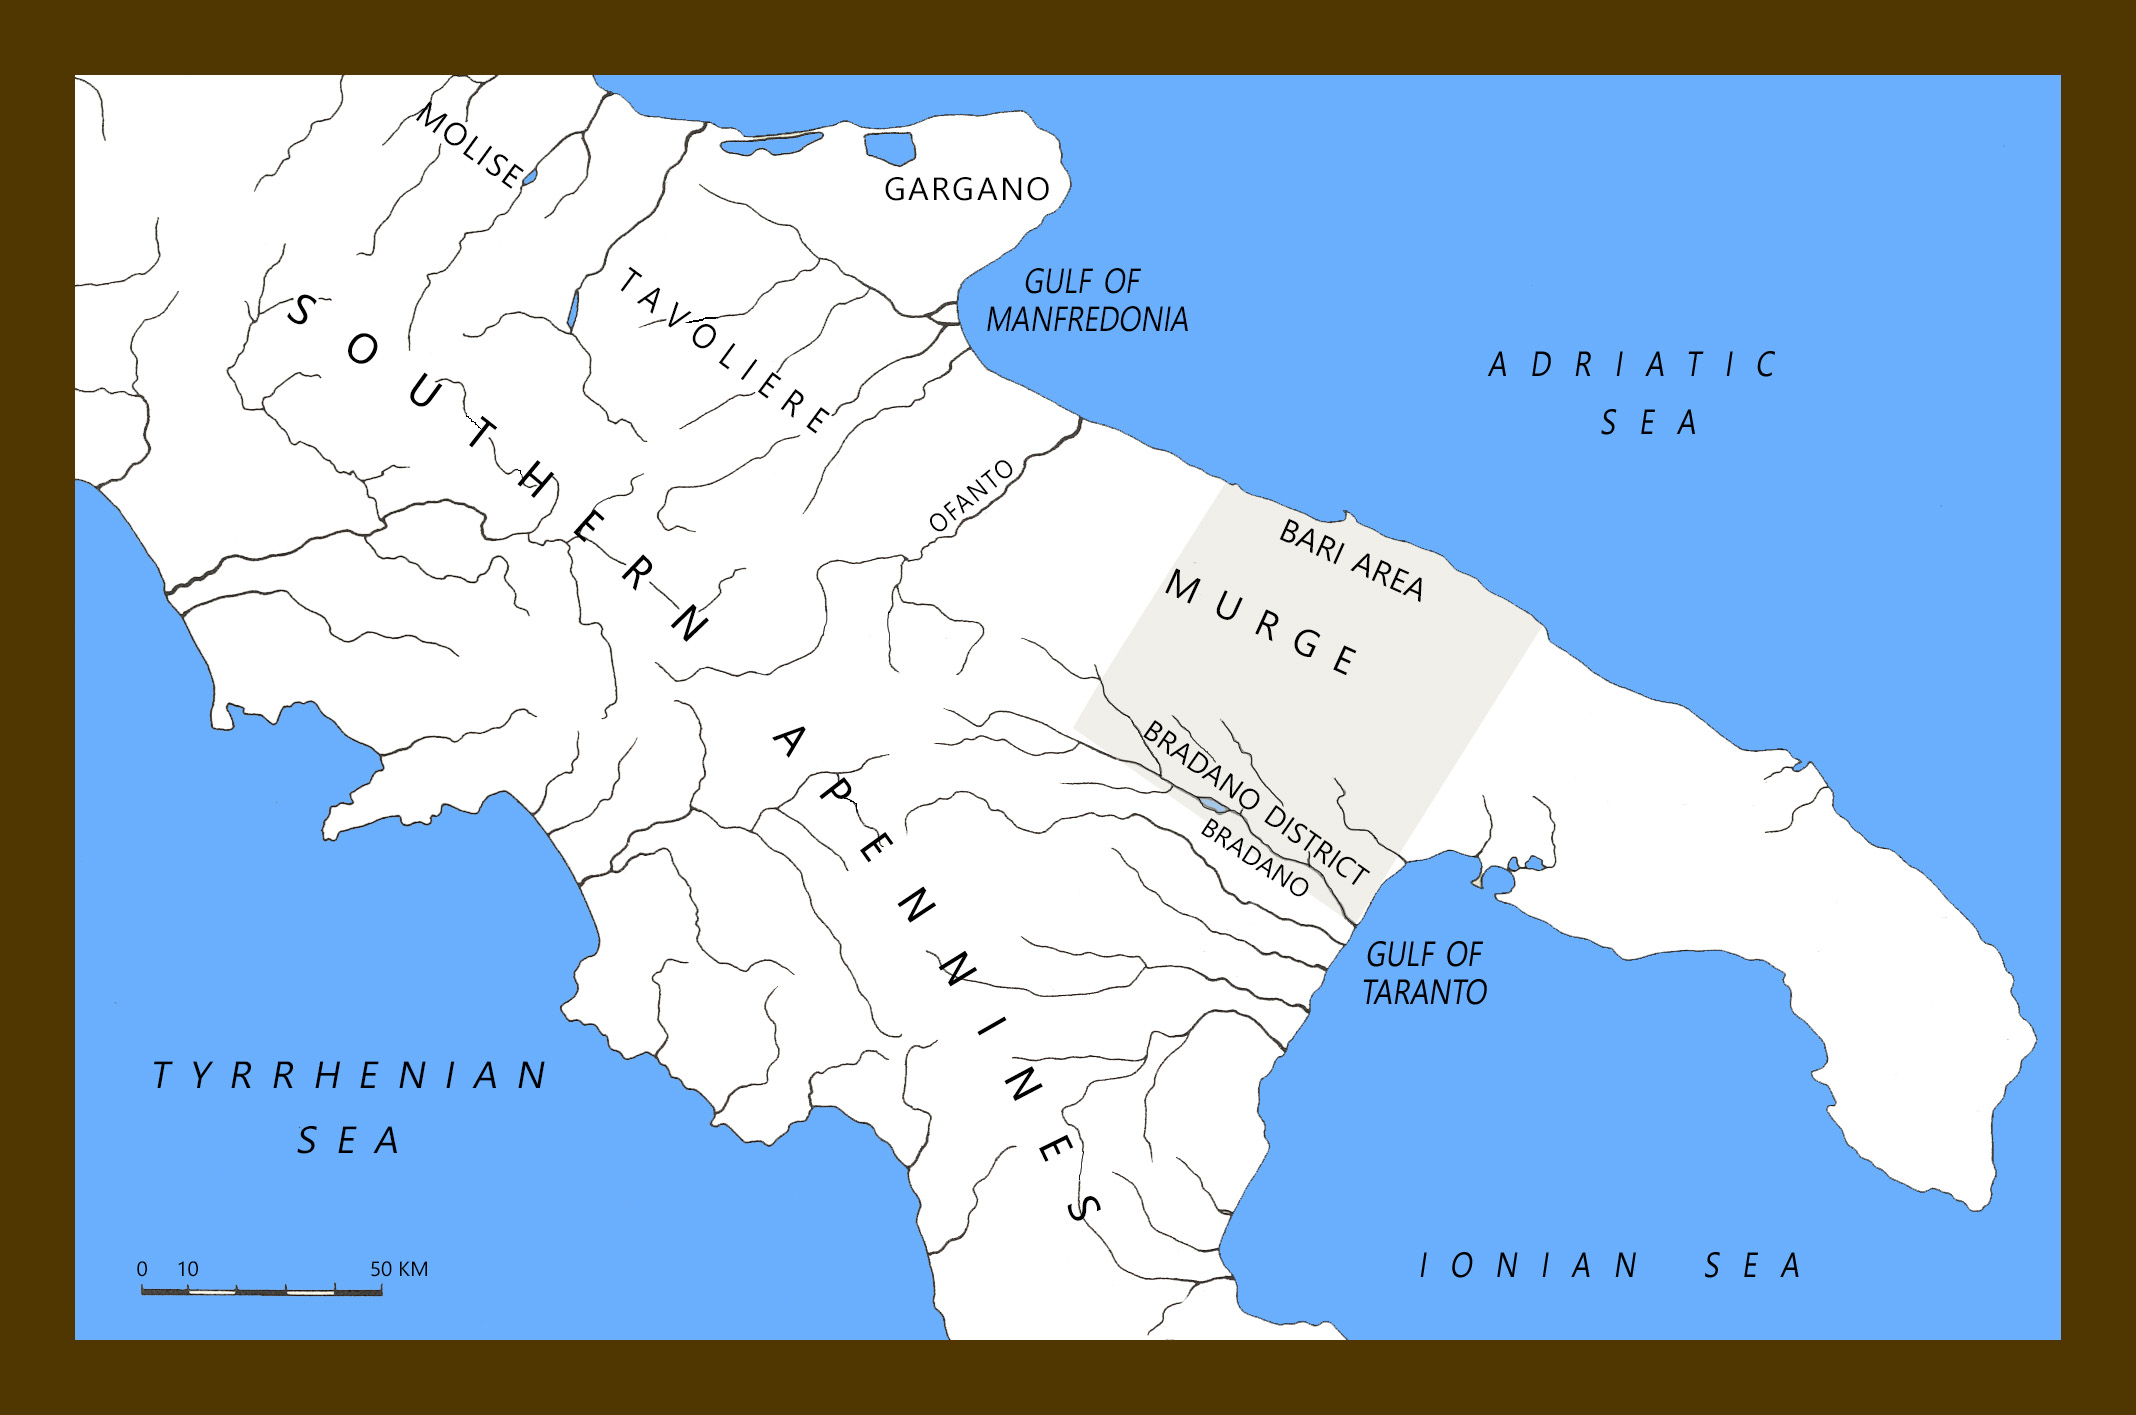 Map Of South Of Italy.Map Of South Italy Showing Geography And Ancient Peucetia Museum